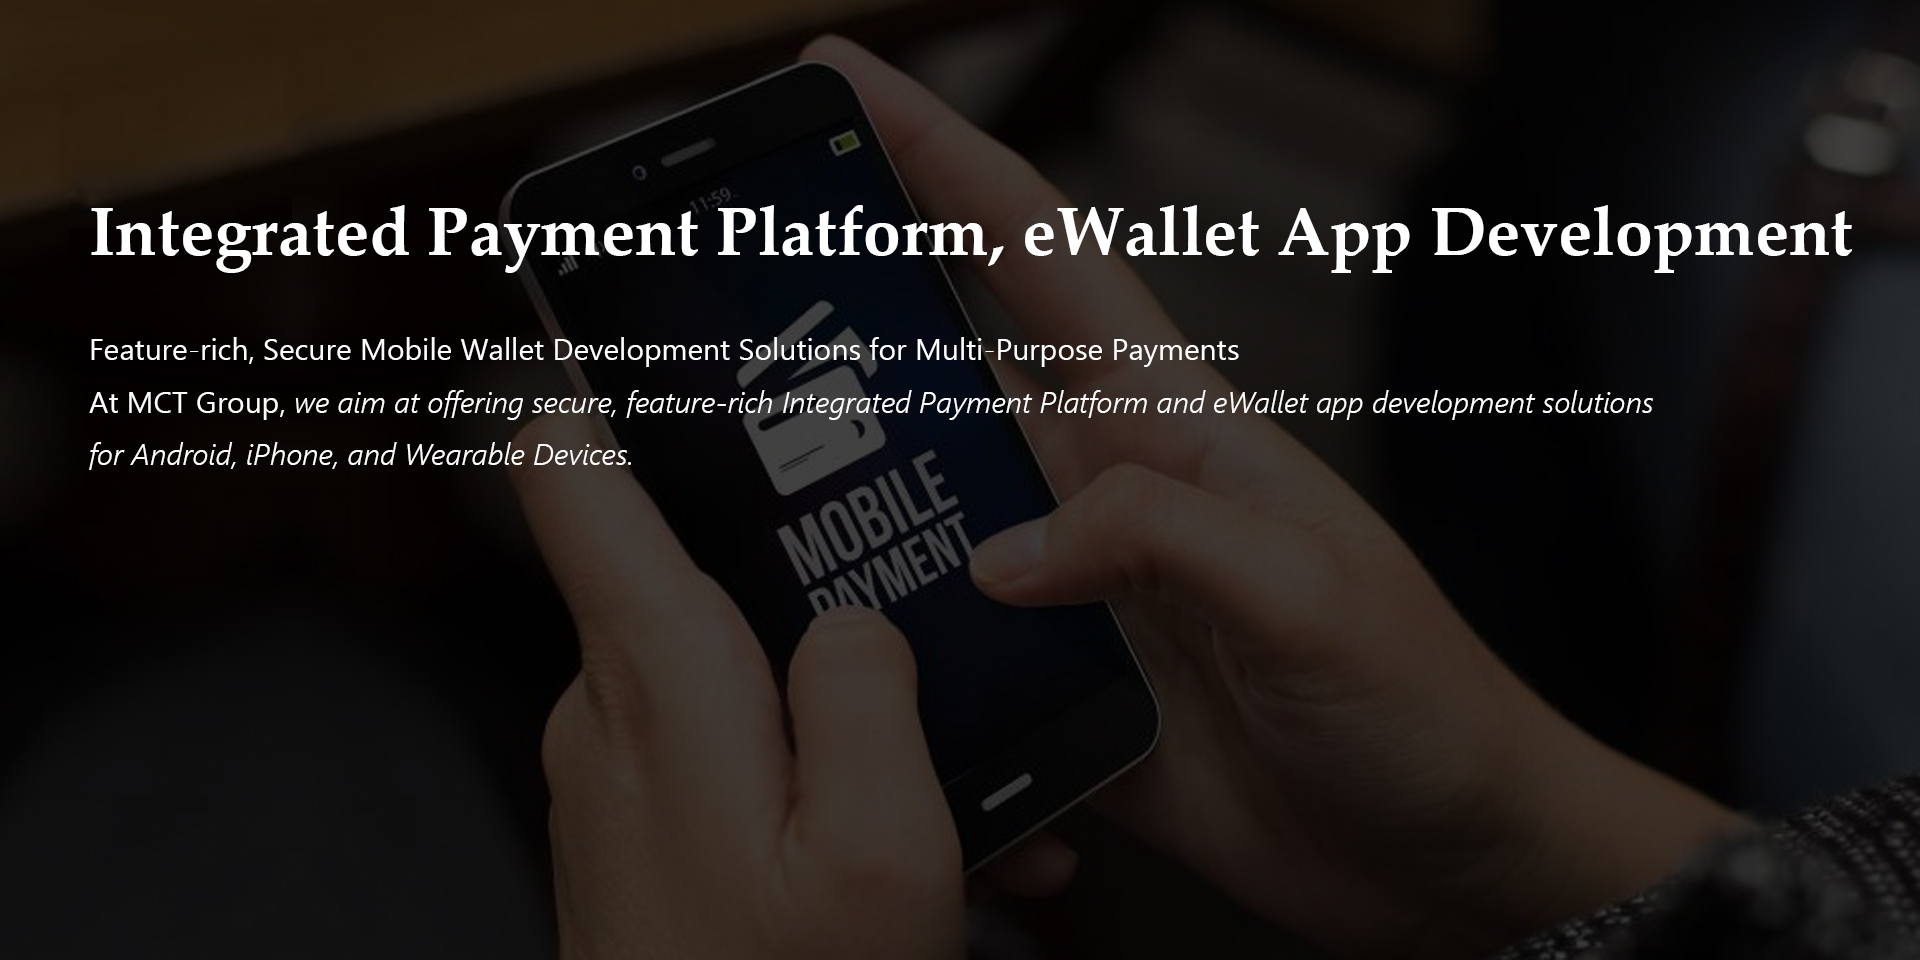 Fin_Tech payment and eWallet solution